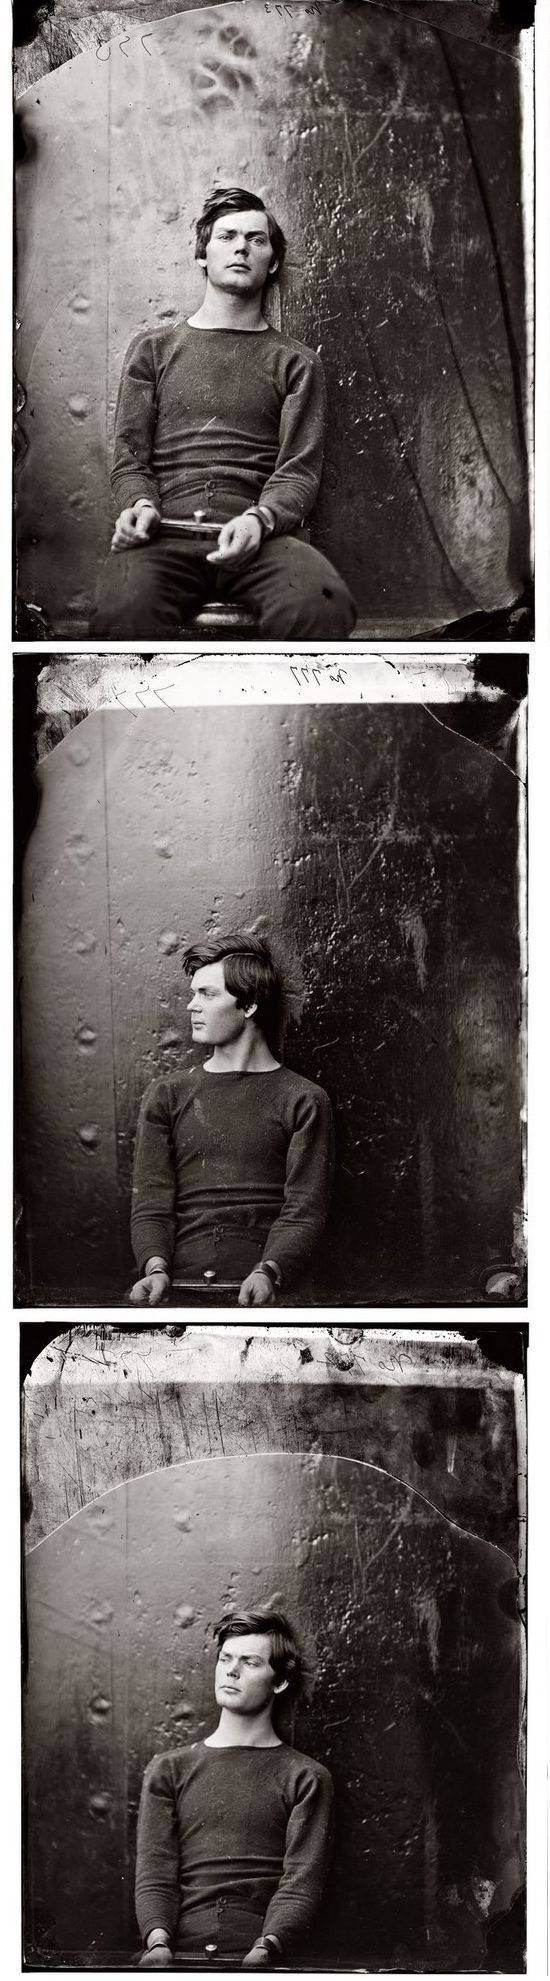 Lewis Powell - One Of The Suspects For Killing Abraham Lincoln. Short before getting executed.